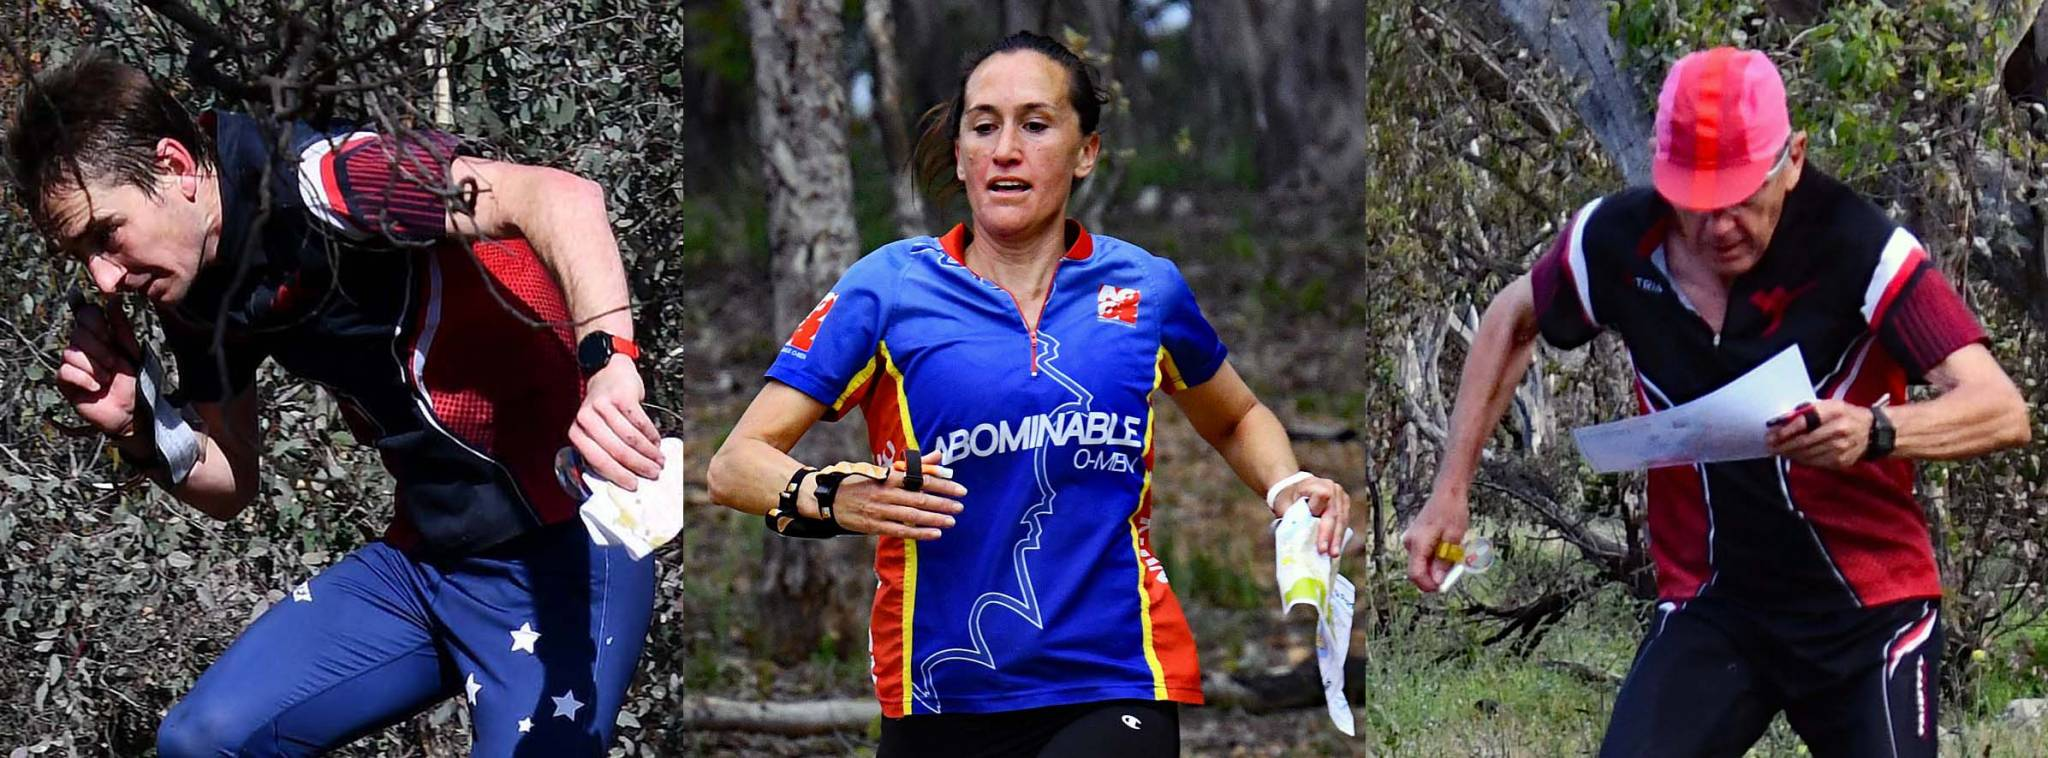 Top Three Consolidate Standings in Runners Shop Twilight Series